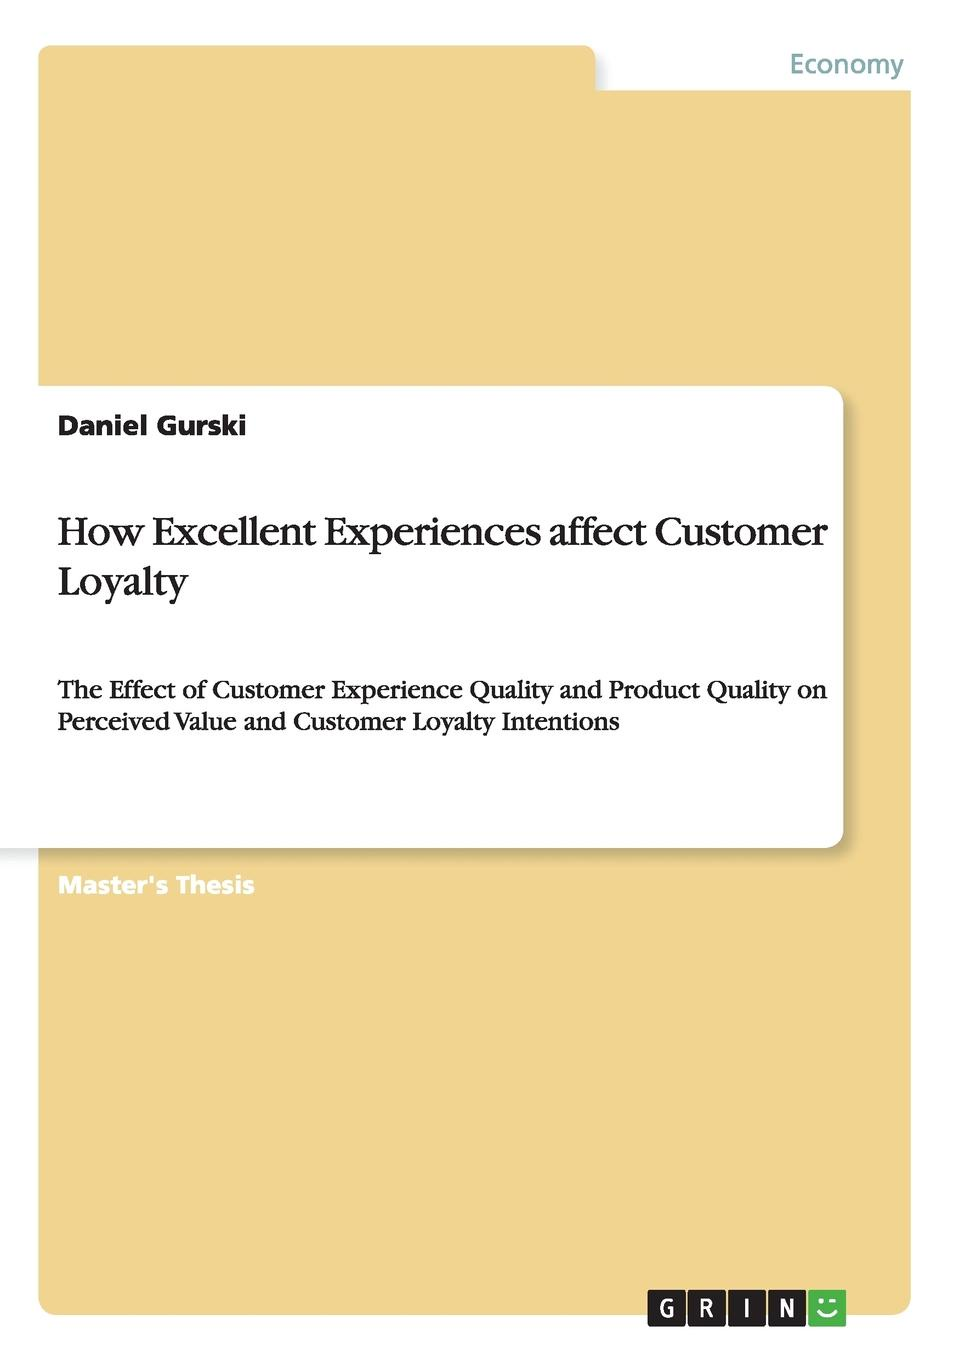 Daniel Gurski How Excellent Experiences affect Customer Loyalty andrew frawley igniting customer connections fire up your company s growth by multiplying customer experience and engagement